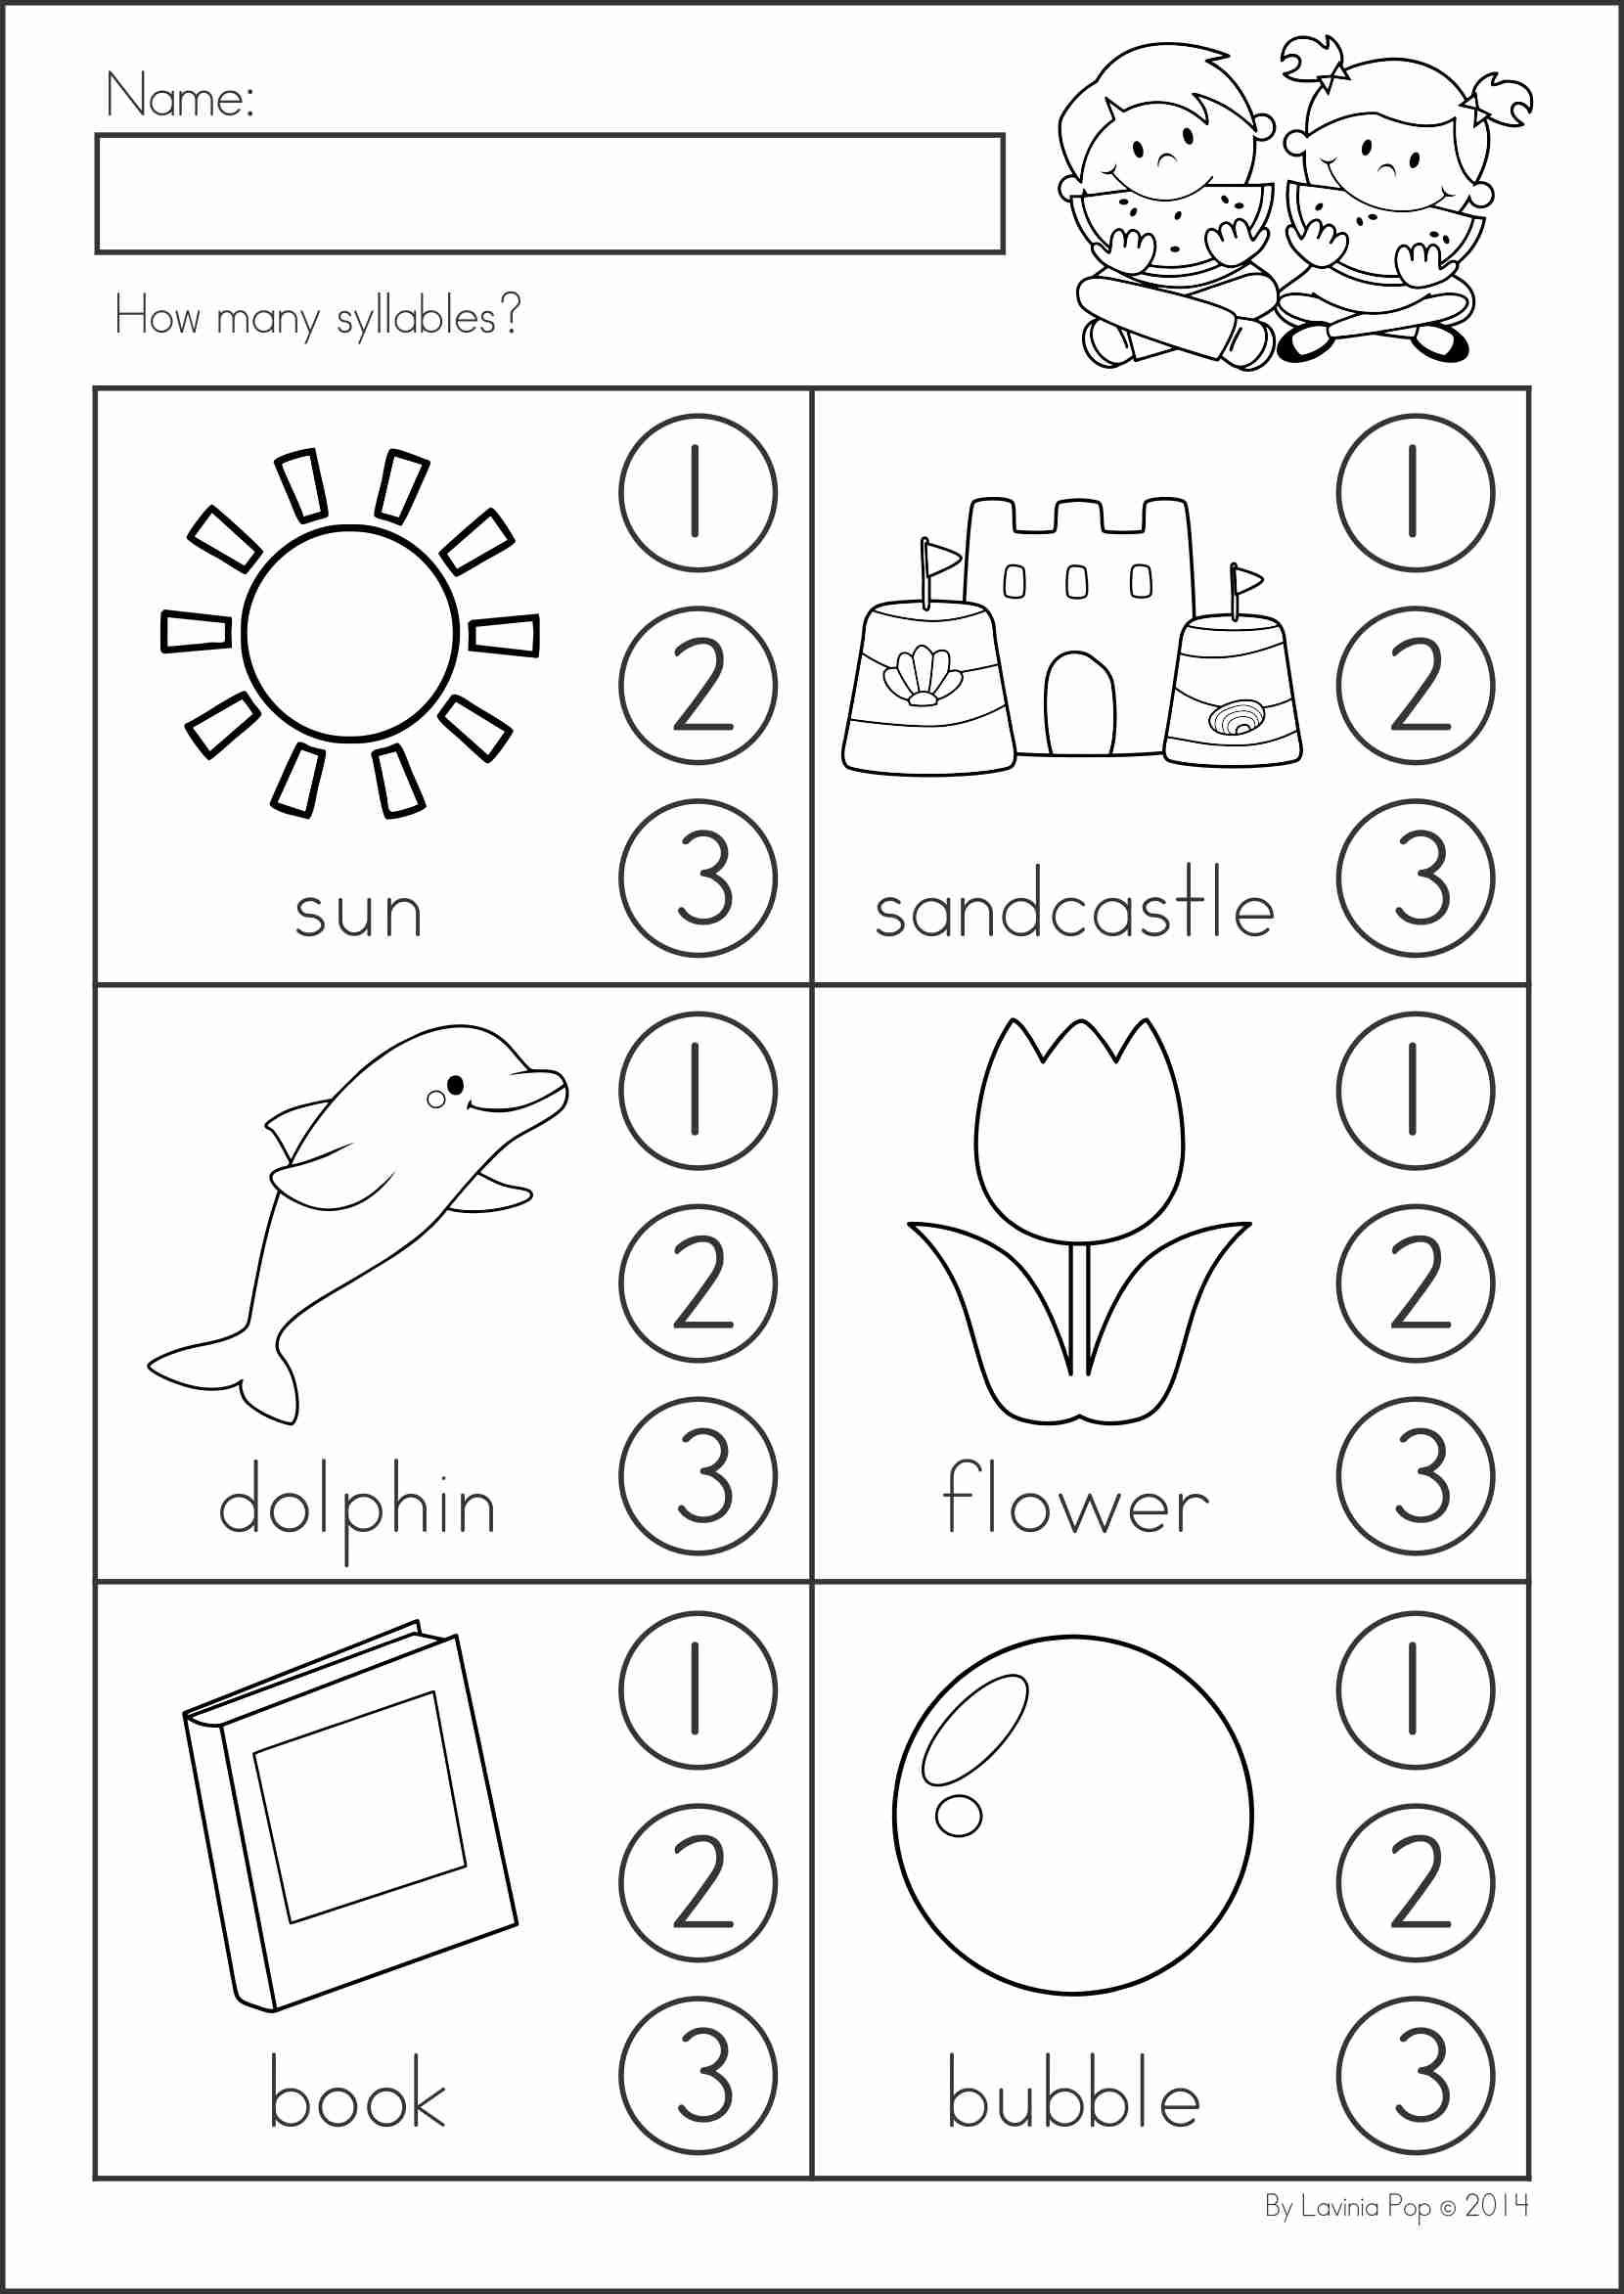 worksheet Summer Worksheets summer review literacy worksheets math and syllable kindergarten activities 104 pages a page from